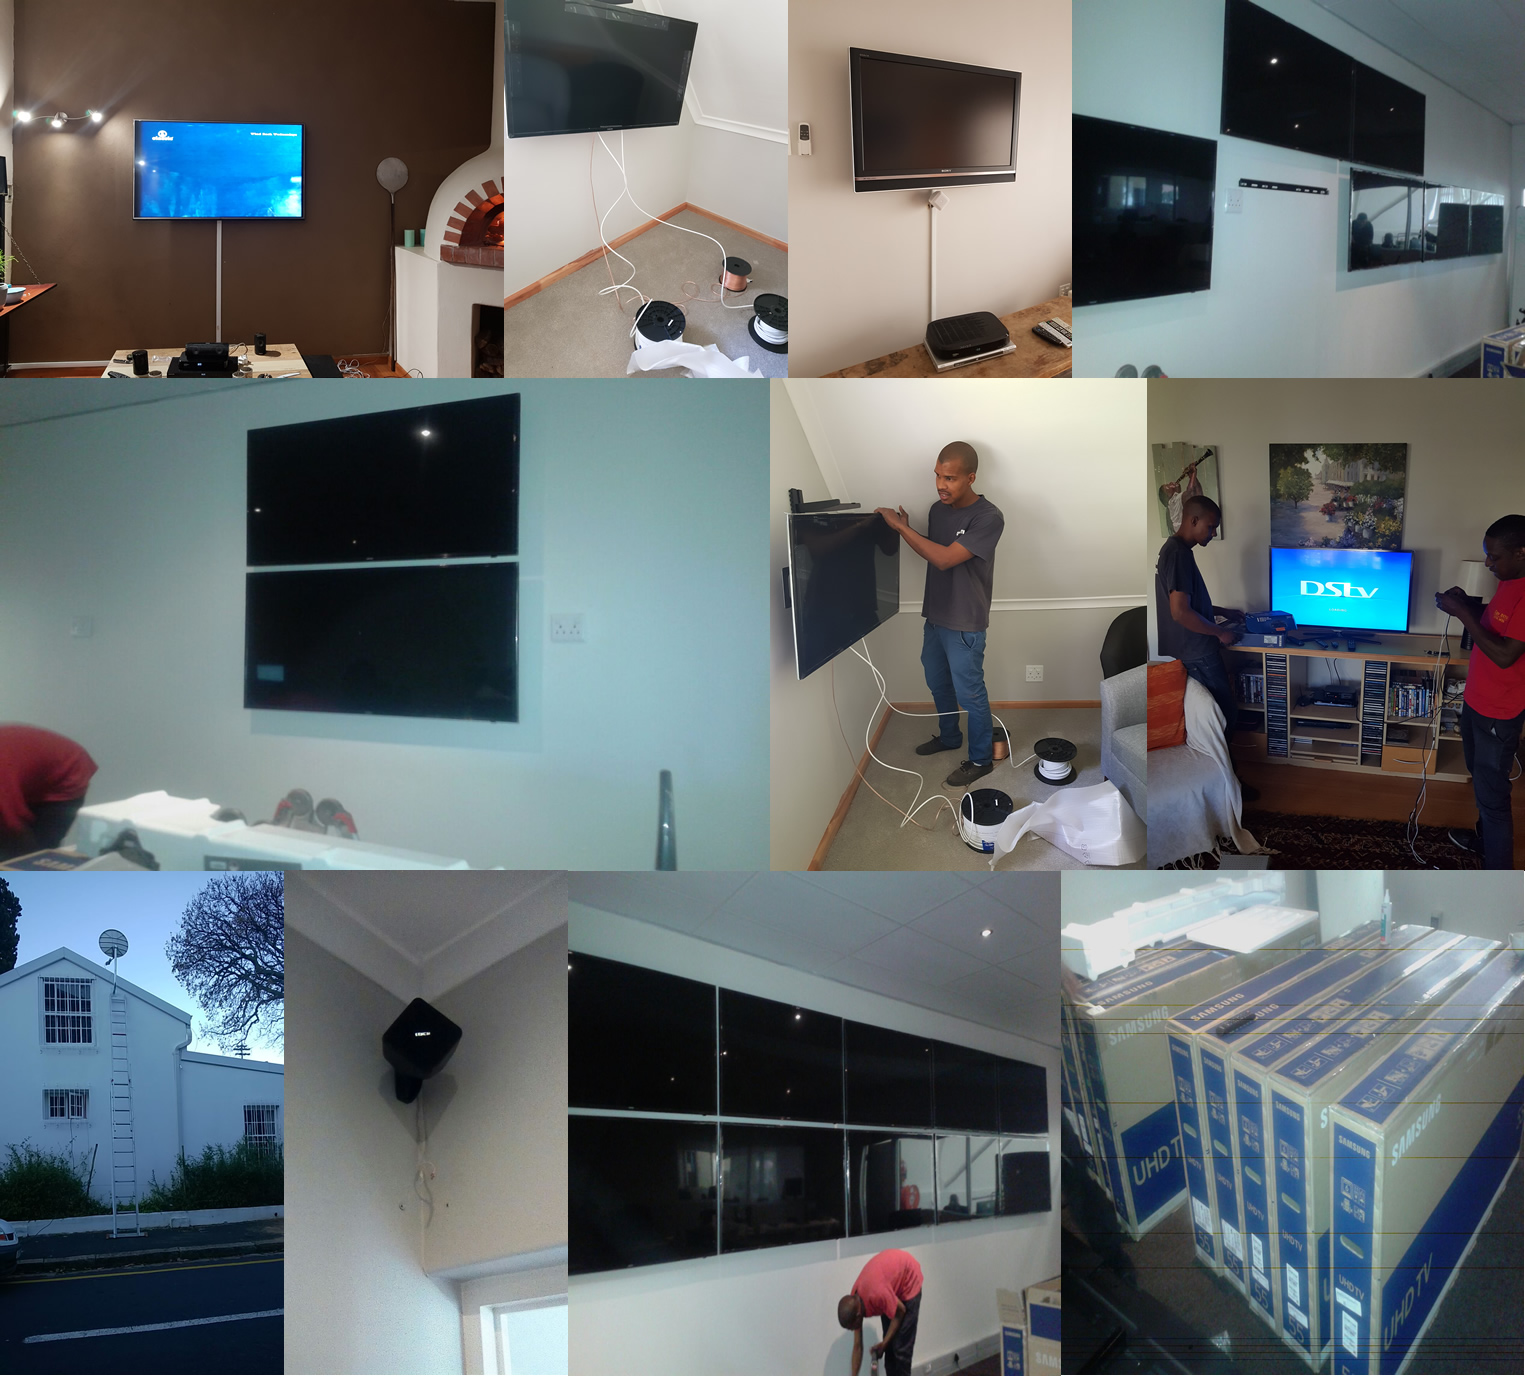 dstv installer full gallery